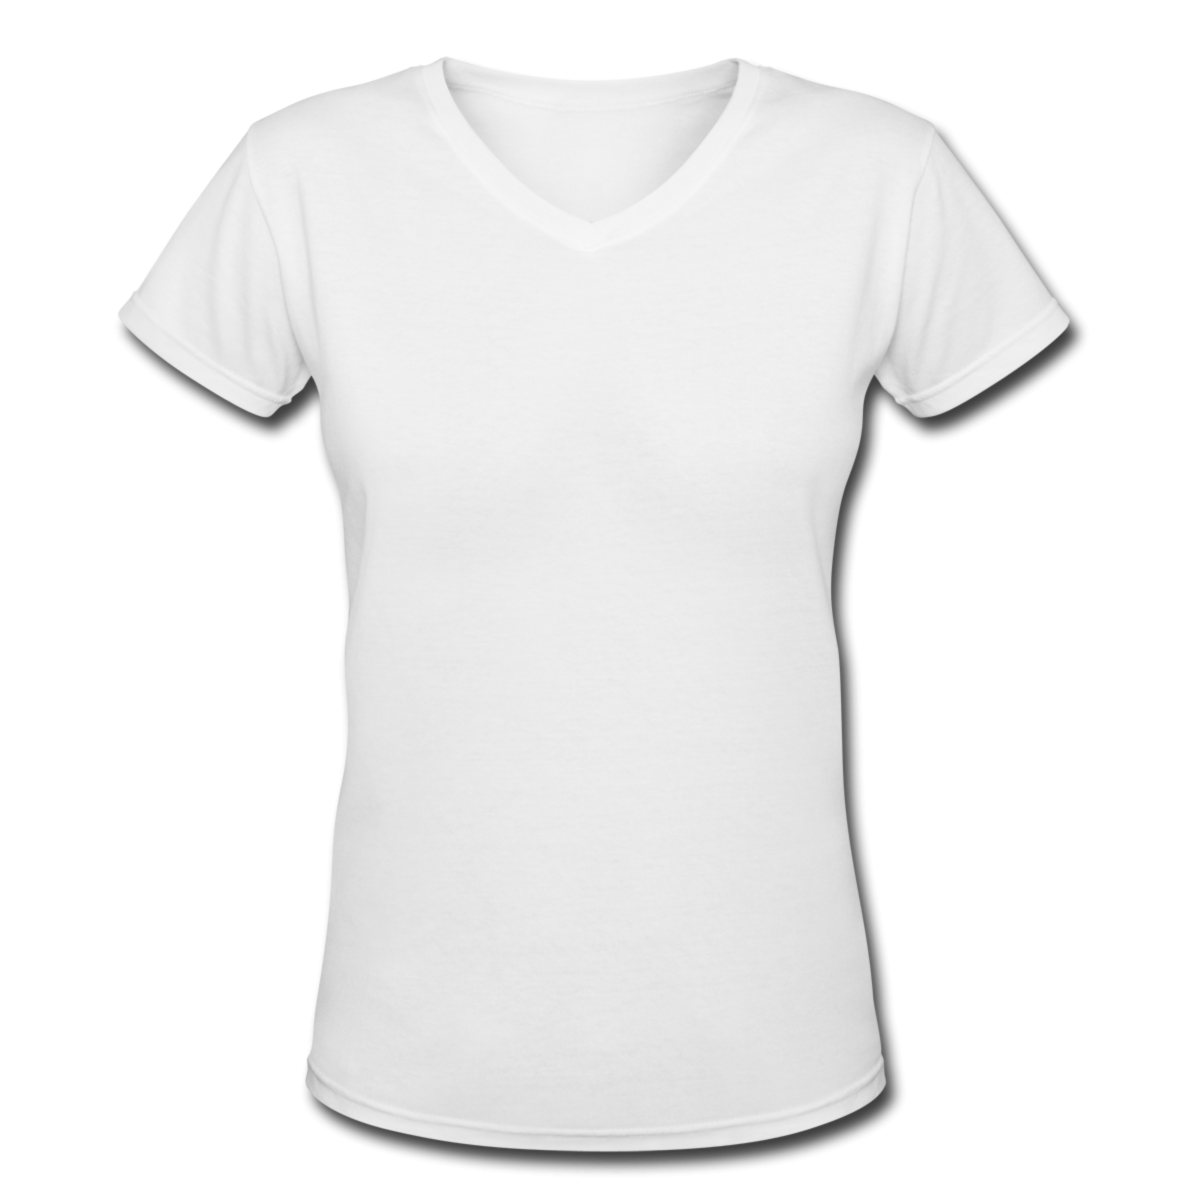 t shirt png blank shirt transparent png pictures icons and #10899